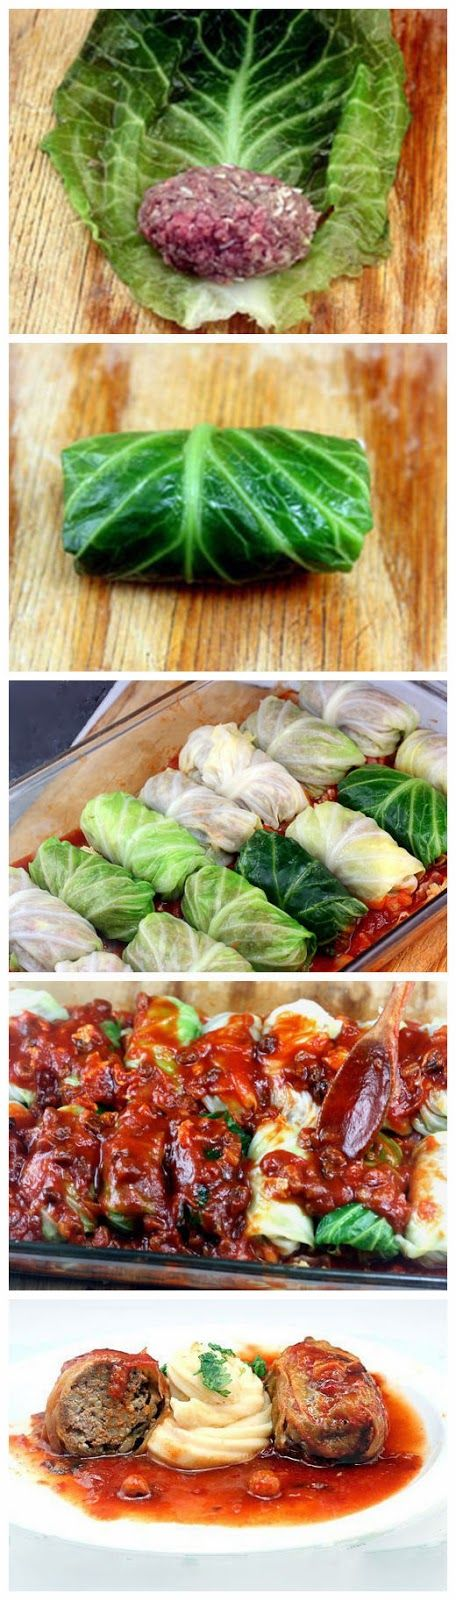 Amazing Stuffed Cabbage Rolls -Check out more recipes like this! Visit http://www.ilgilibilgili.com/en/frosty-toffee-bits-pie-recipe.html